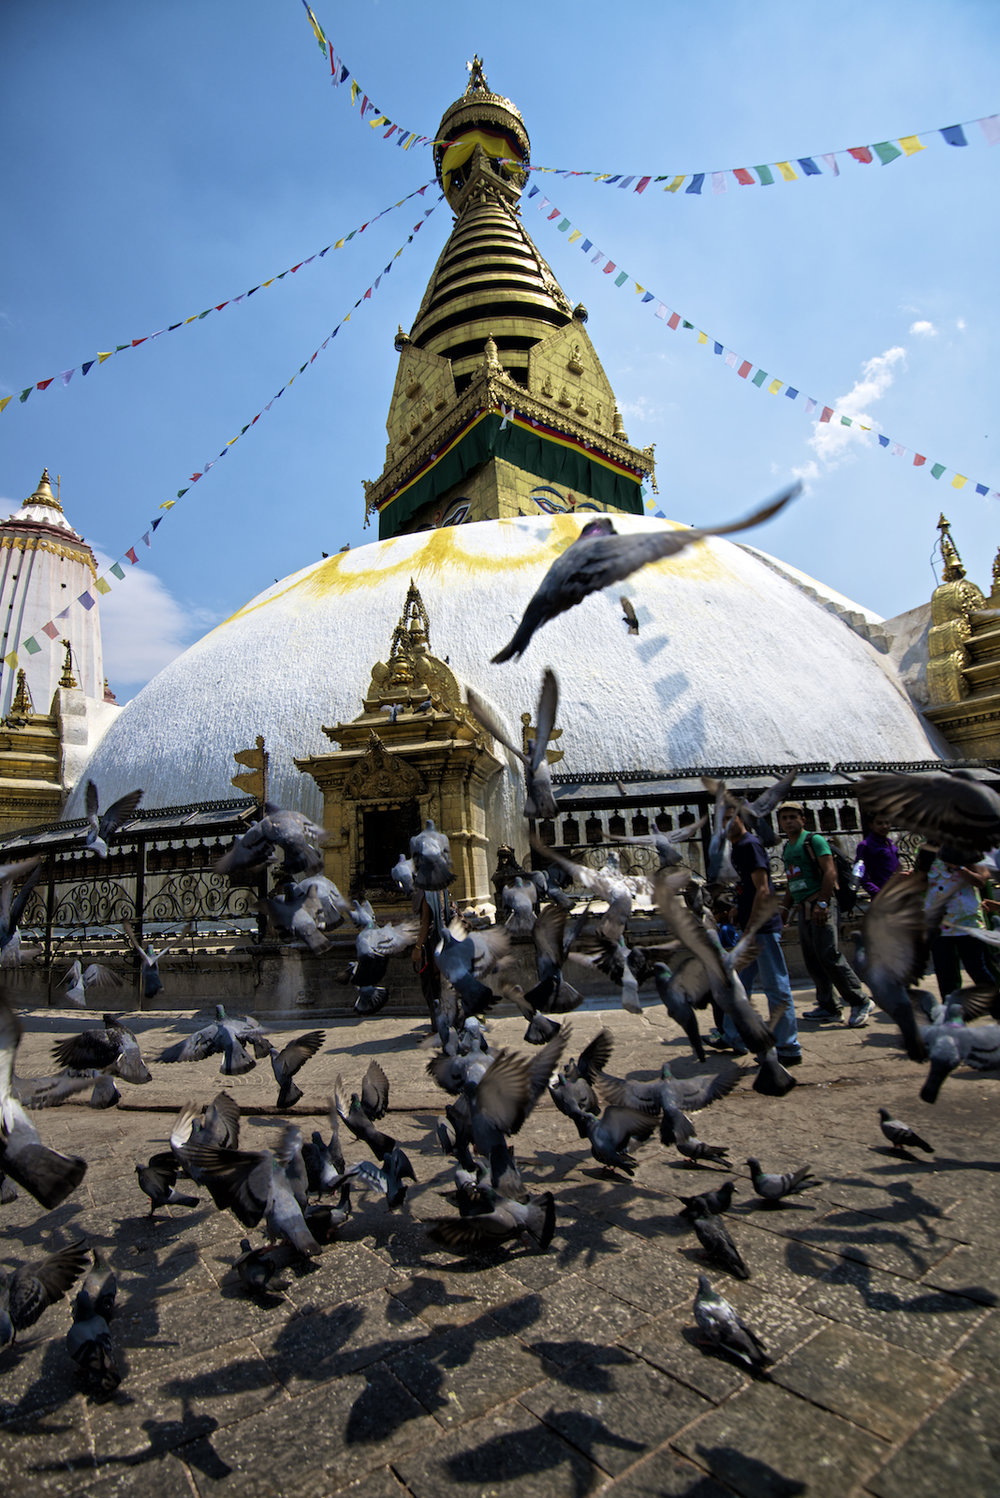 Boudhanath Stupa and Temple in Kathmandu, Nepal.  Image by New Orleans based travel photographer, Marc Pagani